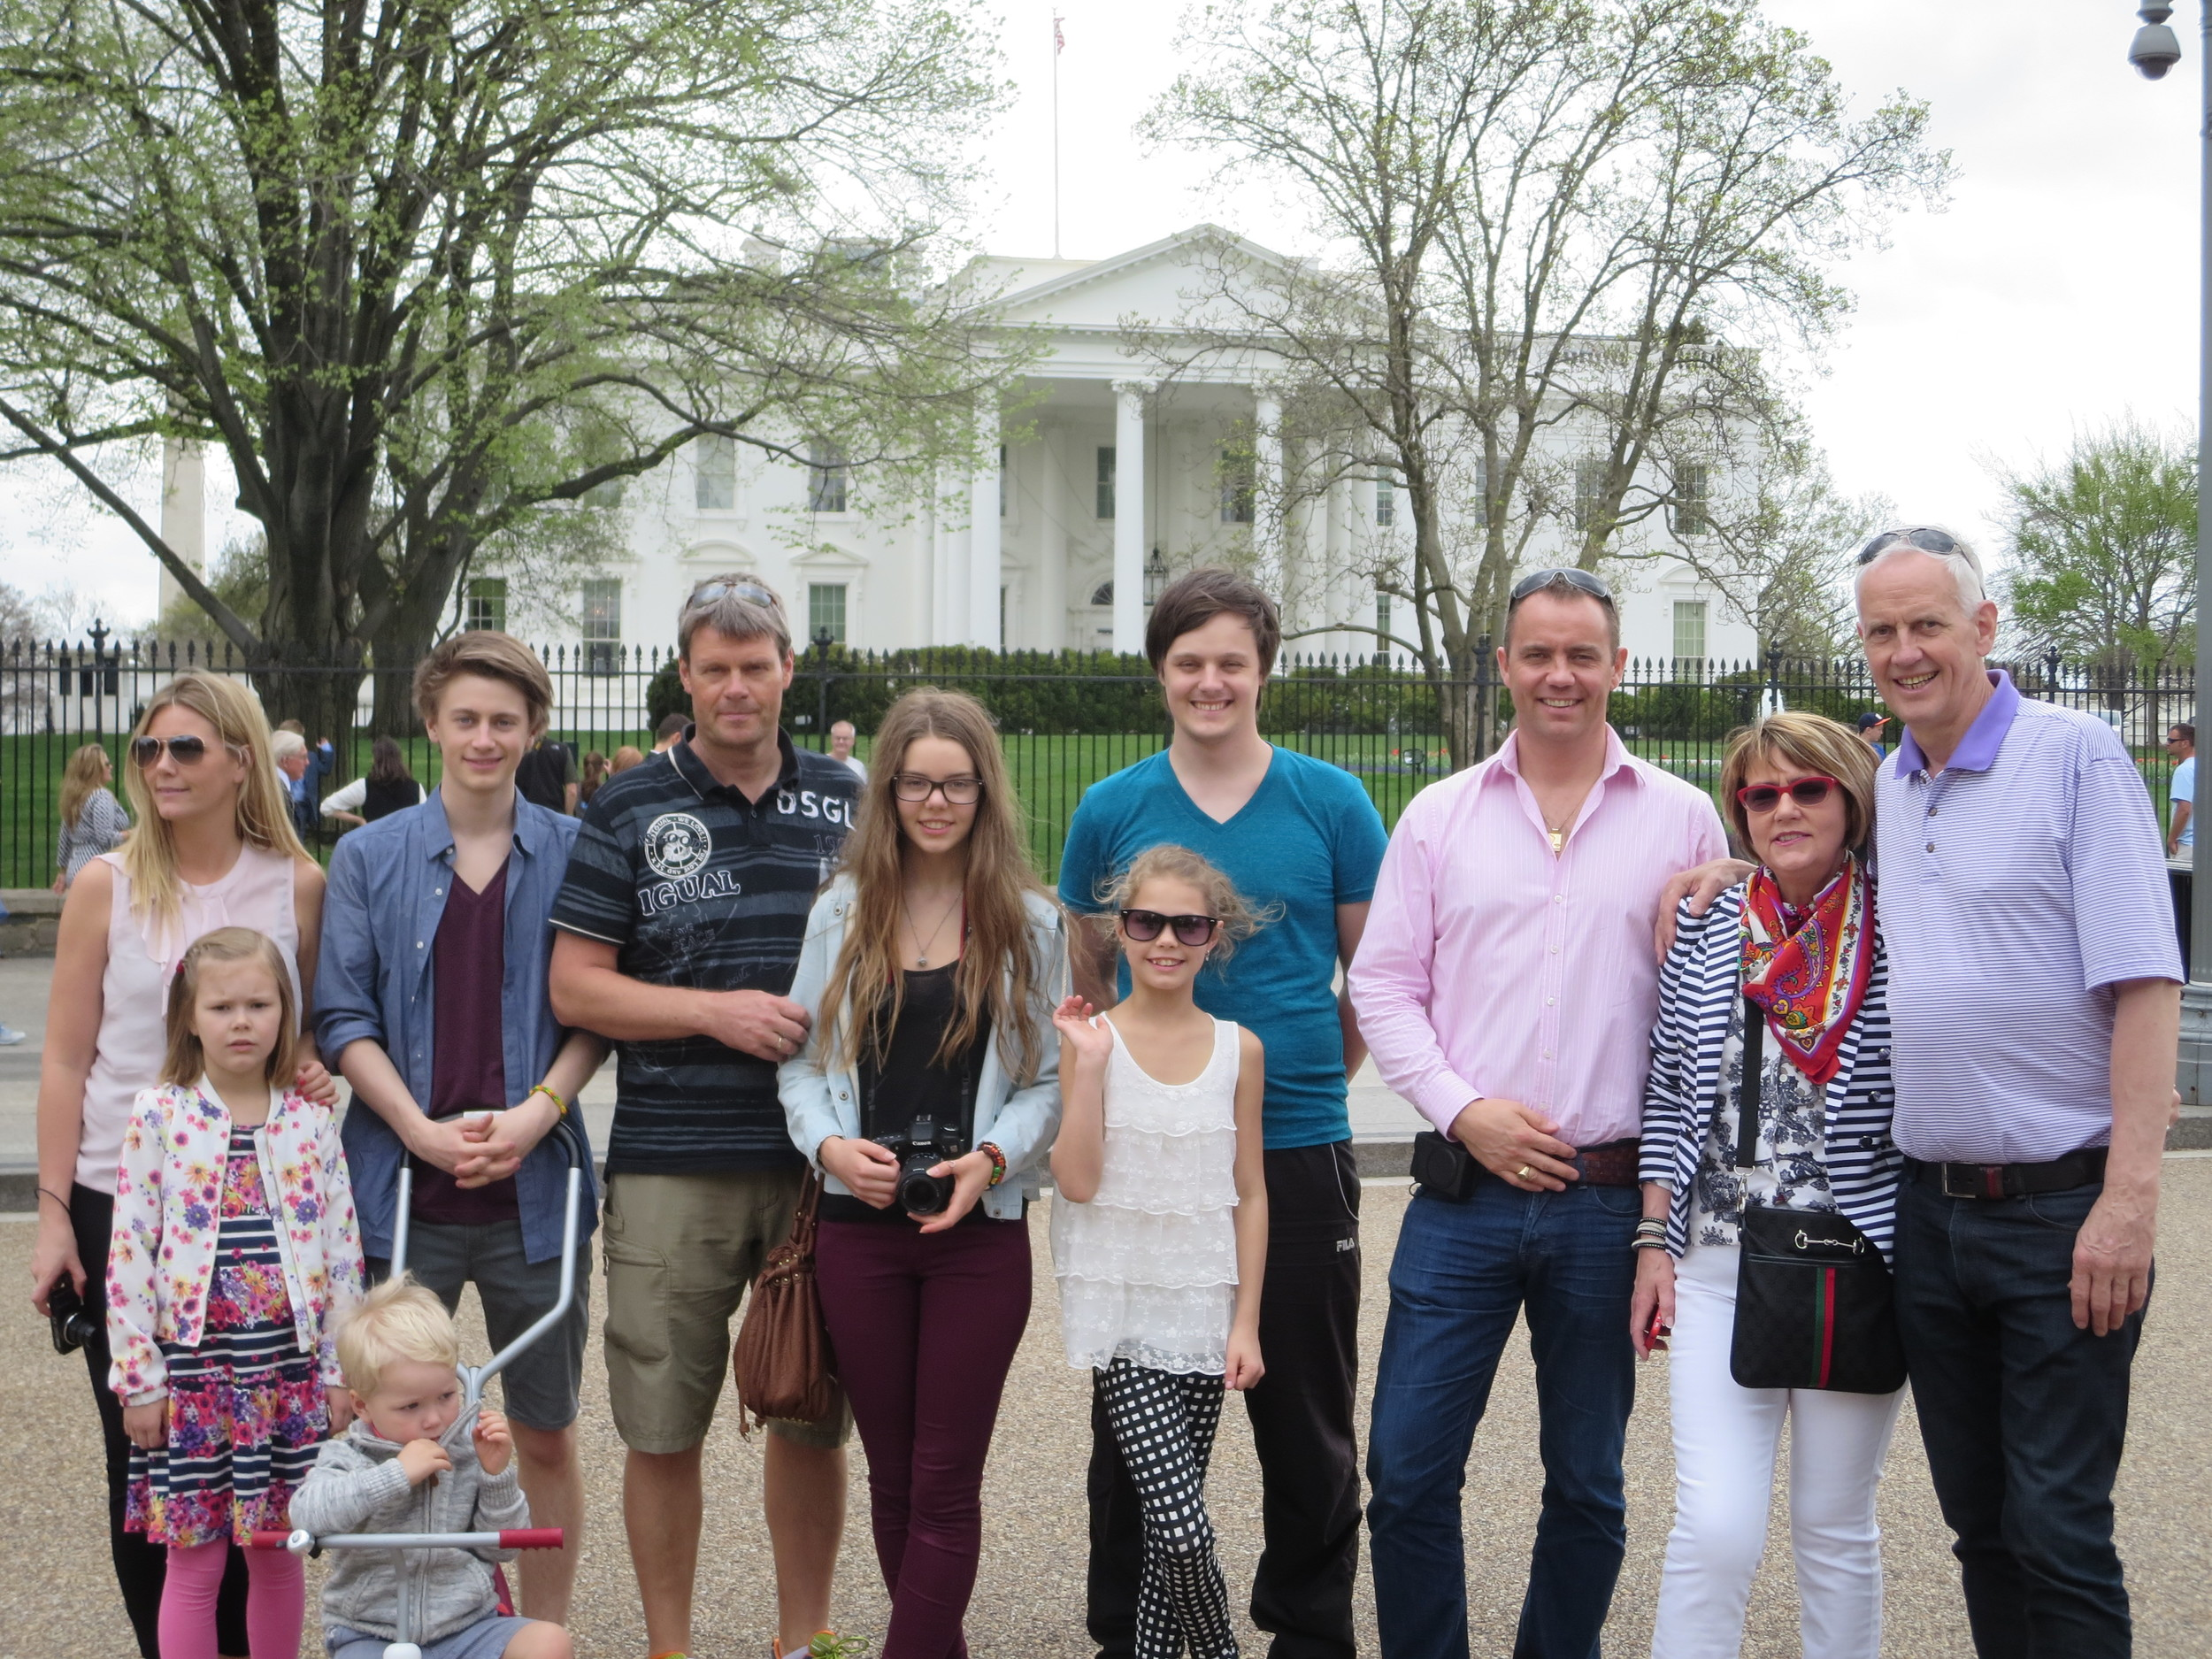 Group photo (without Gudrun) in front of The White House